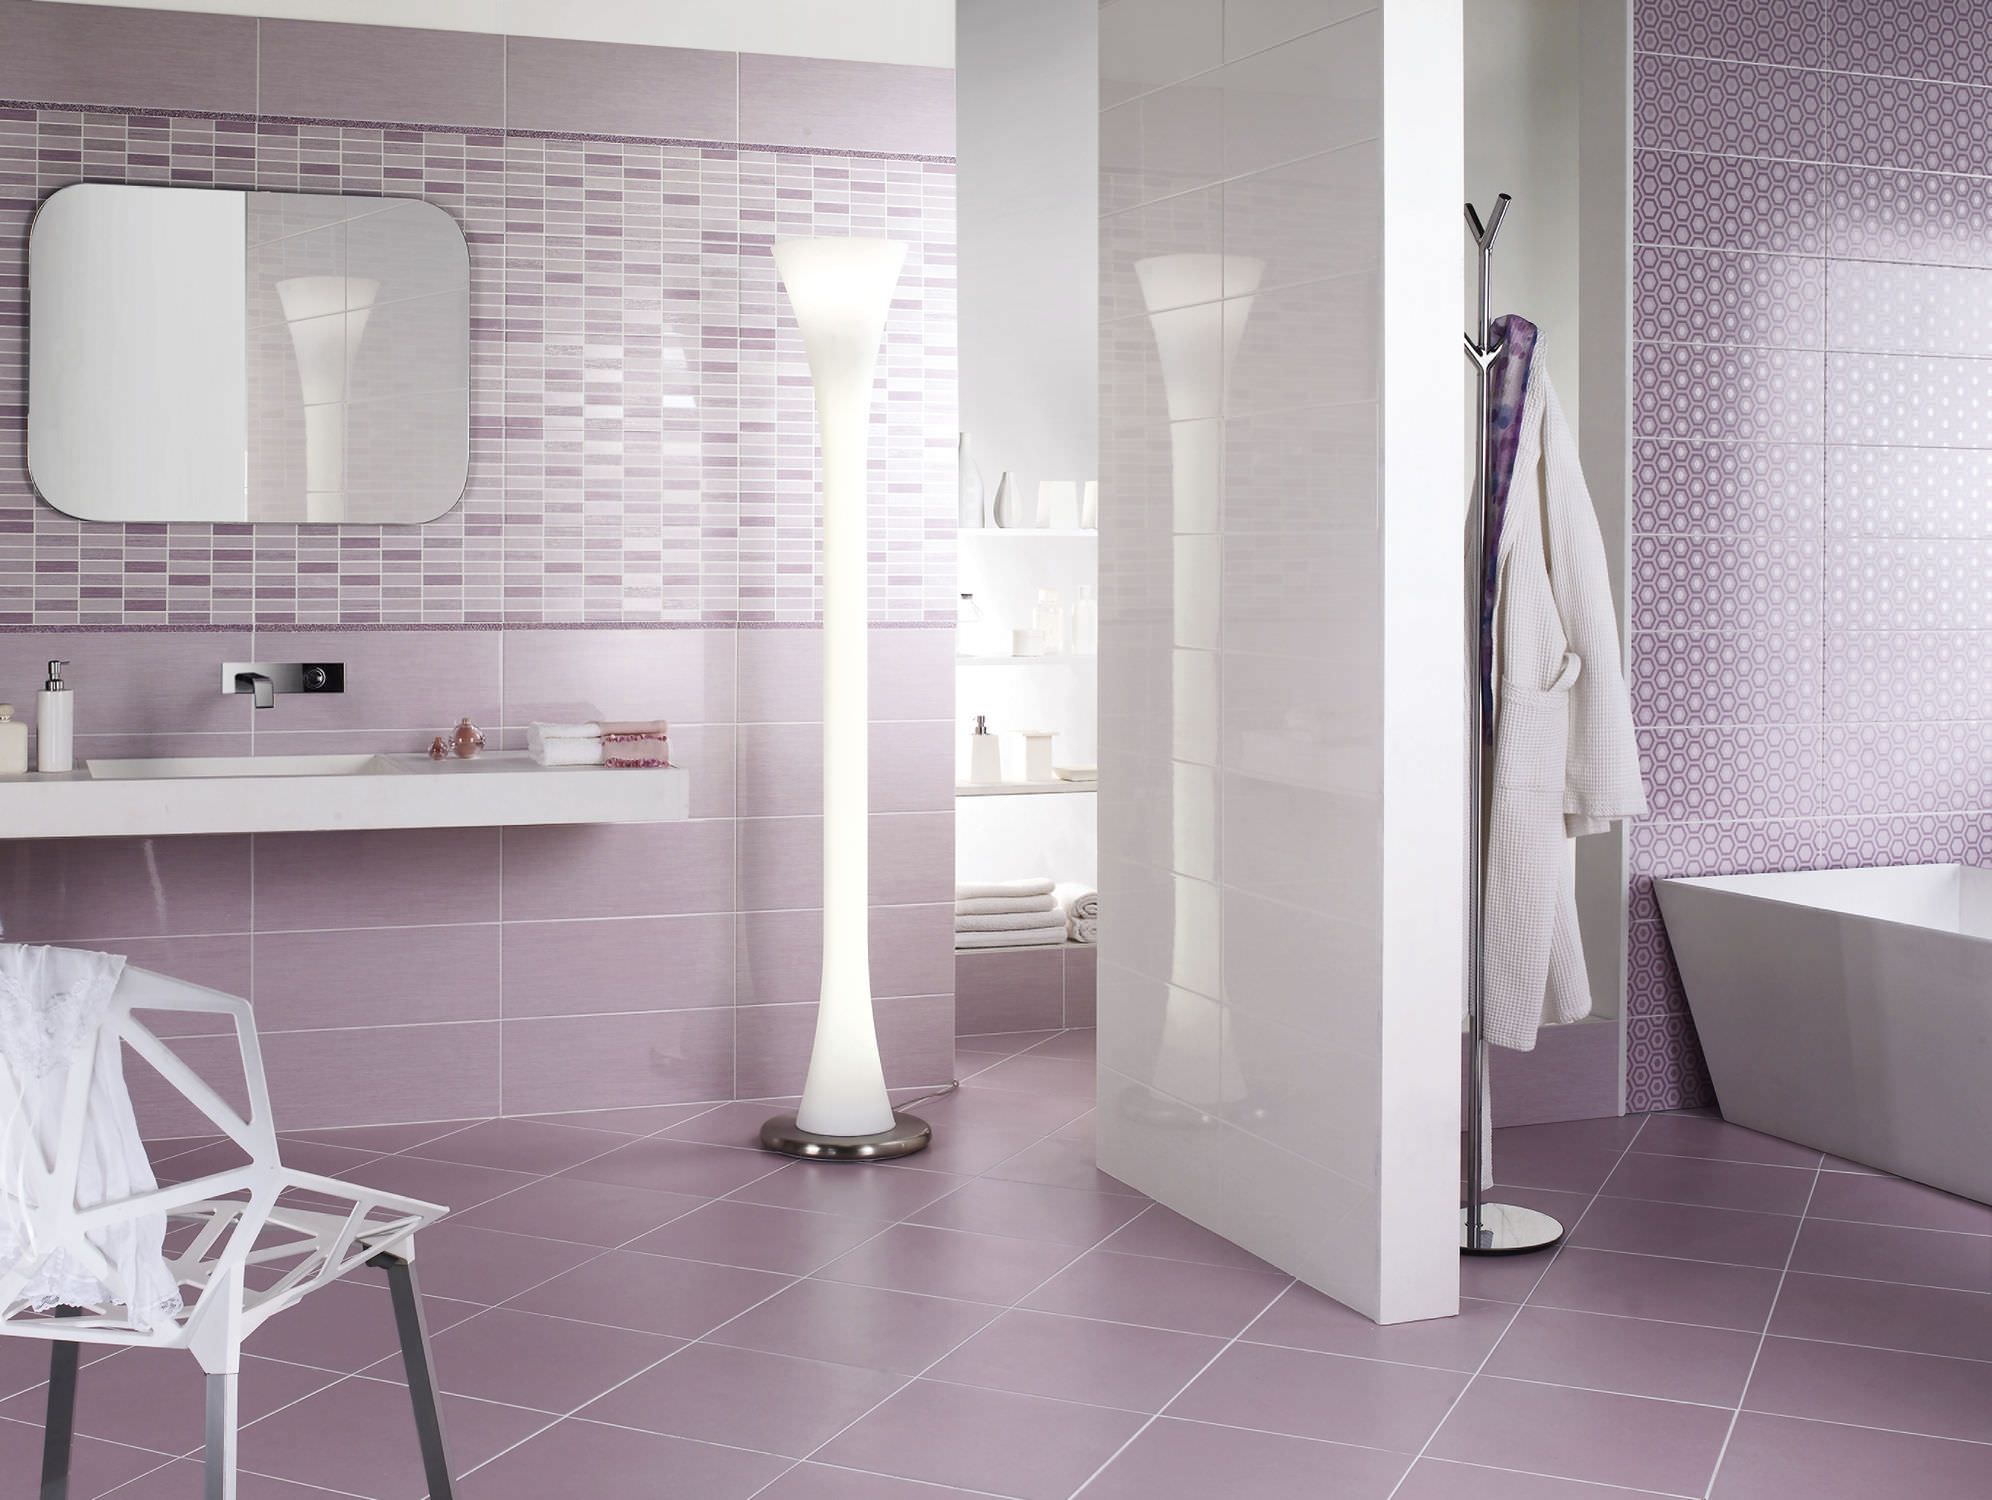 Bathroom Tiles At Home Depot brilliant bathroom tile ideas home depot finding suitable mirror